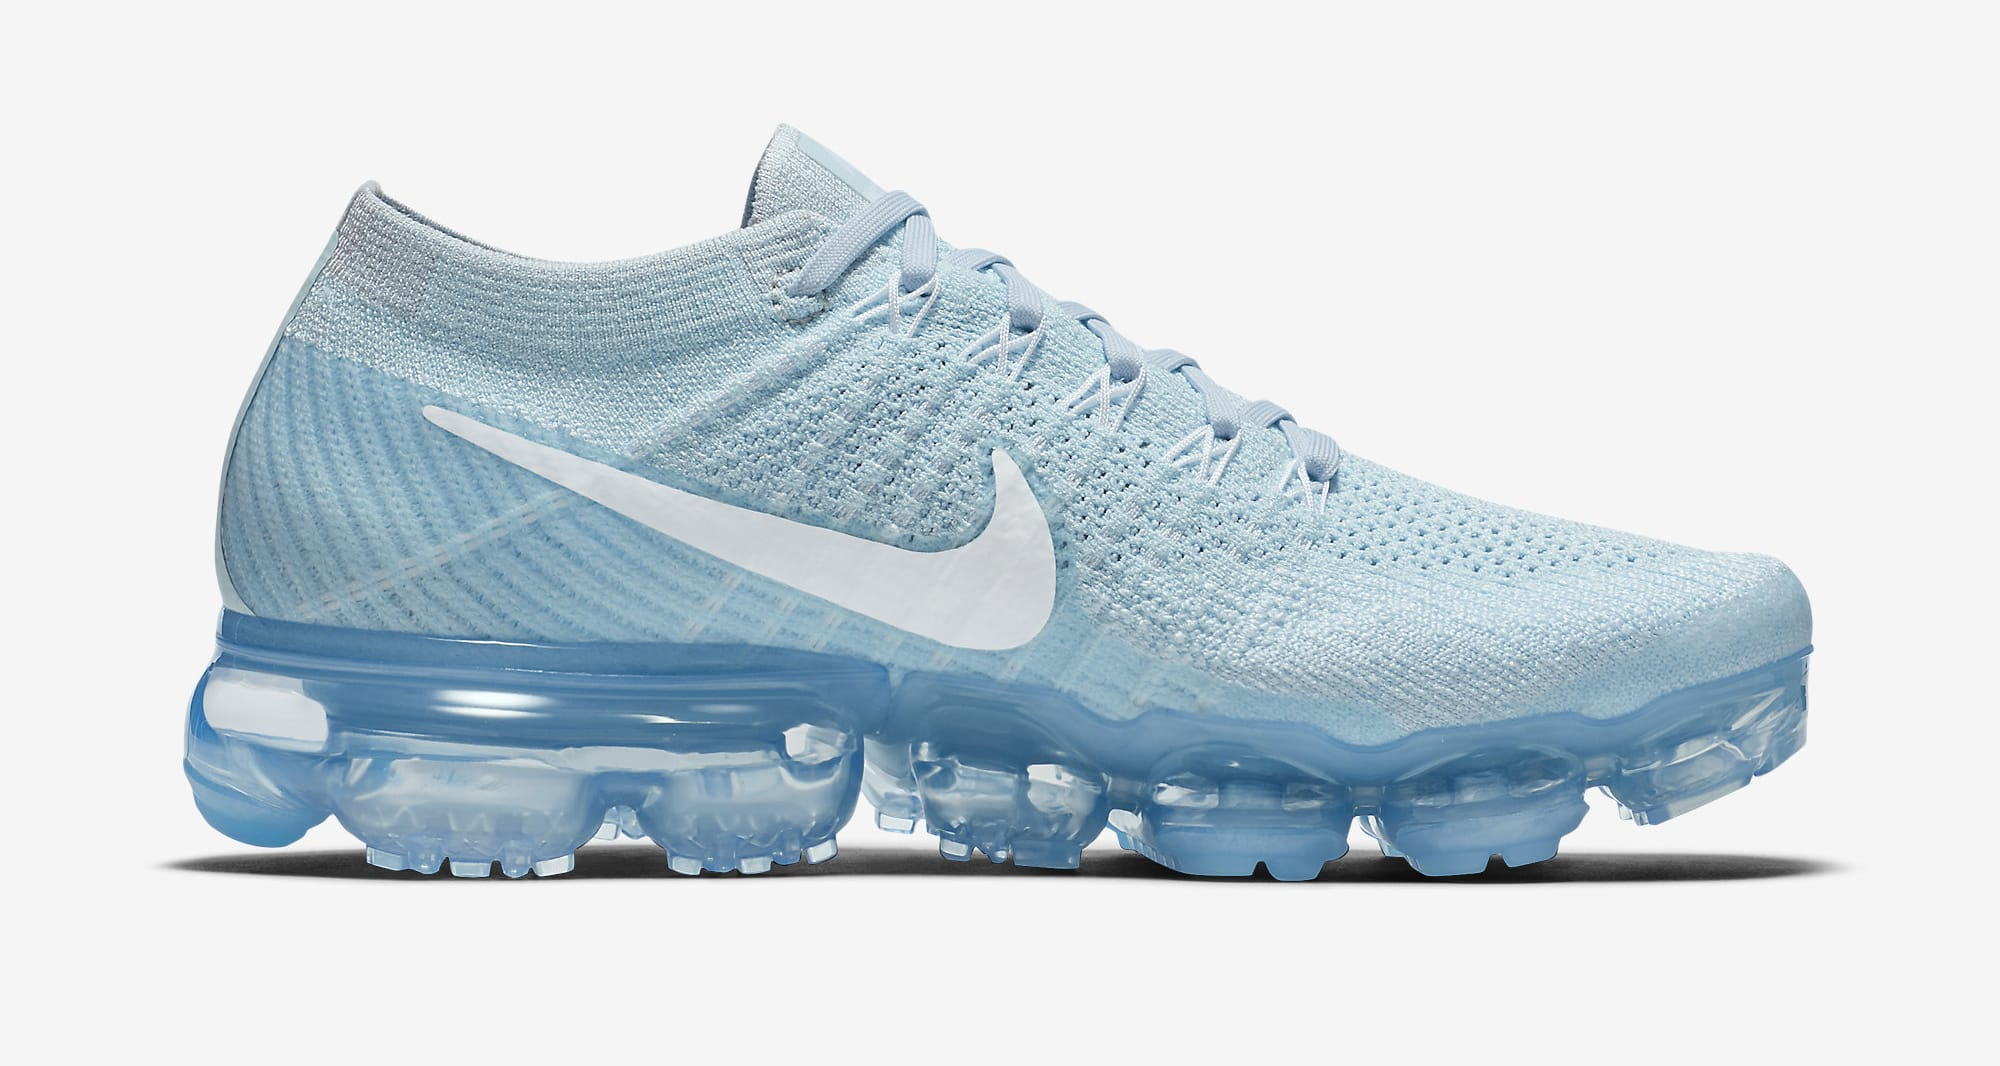 6d21e1ec7a6d Buy Nike Cheap Air Vapormax Flyknit Running Shoes Sale Online 2018